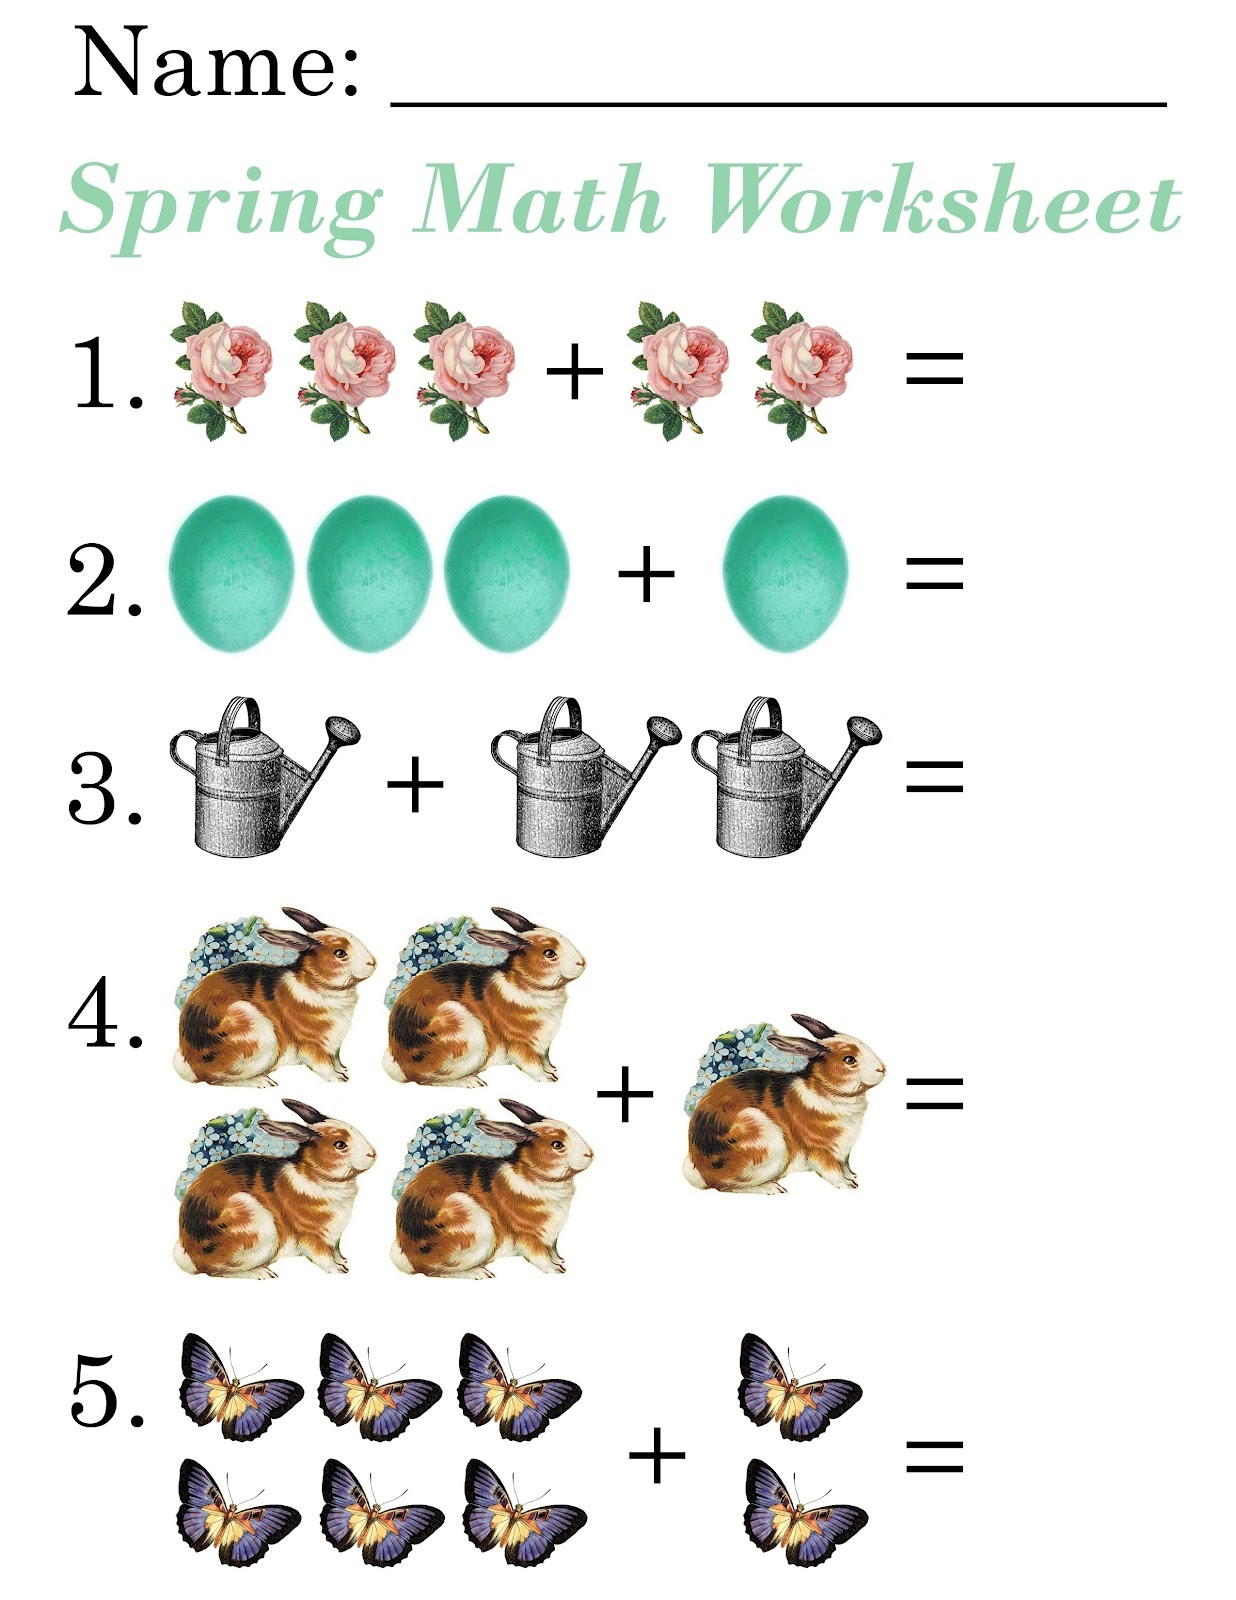 Fun Worksheets For 5 Year Olds